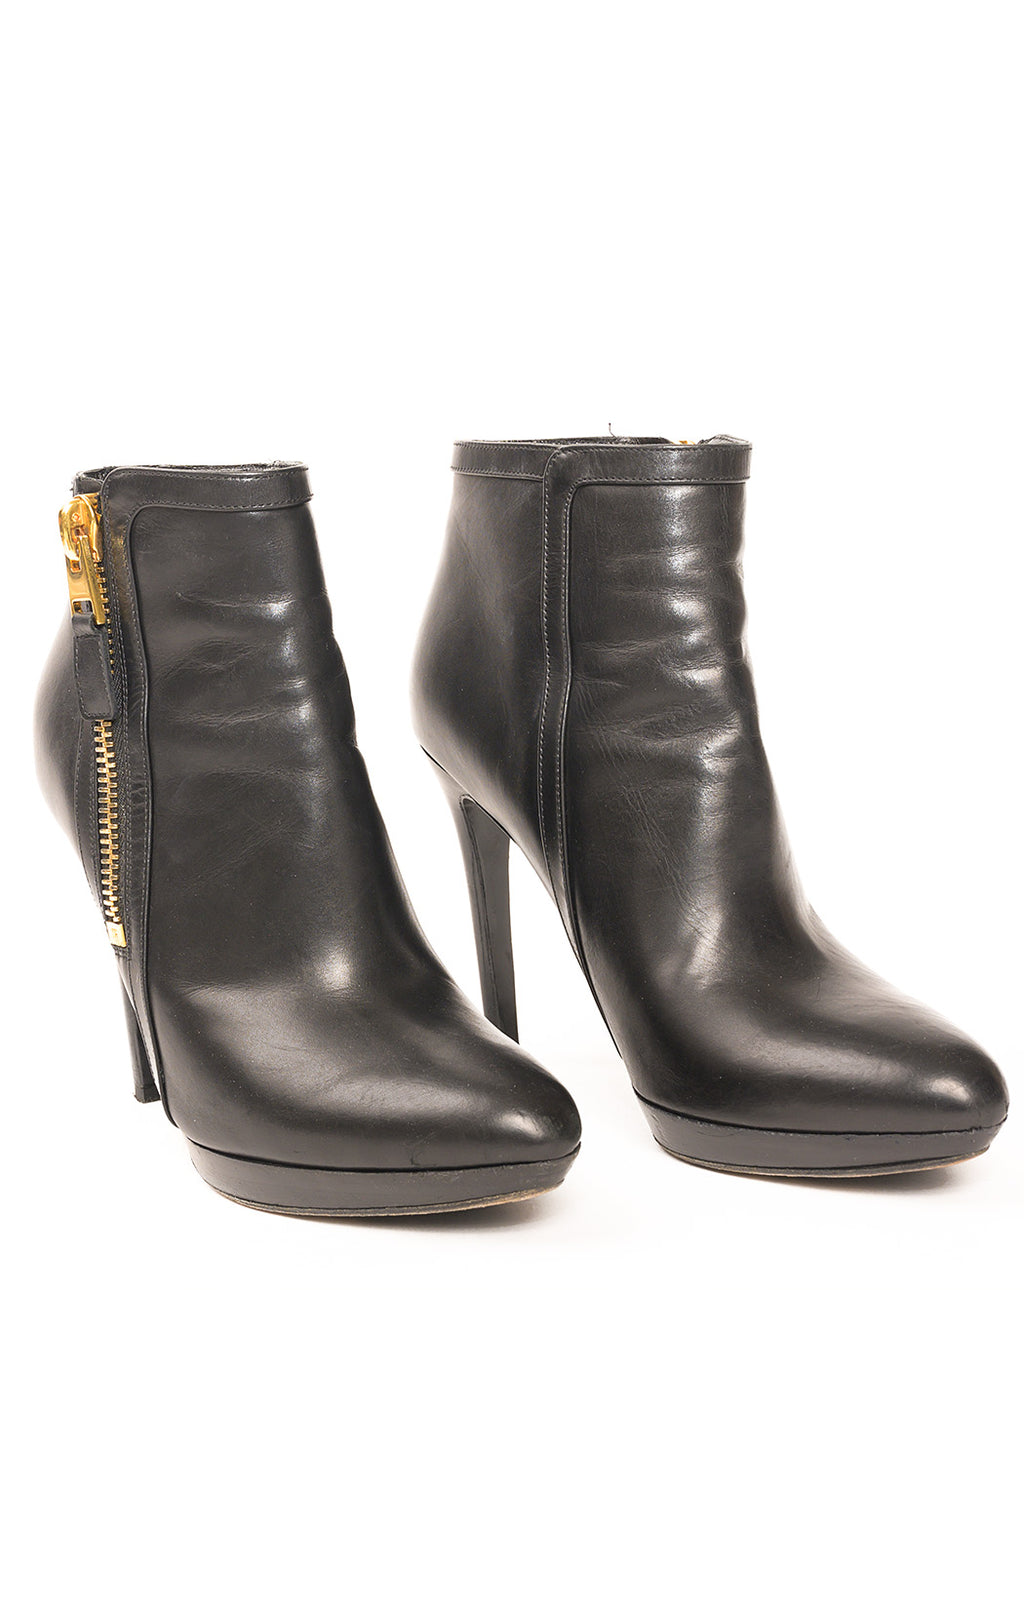 Front view of TOM FORD Ankle boot Size: 39/9